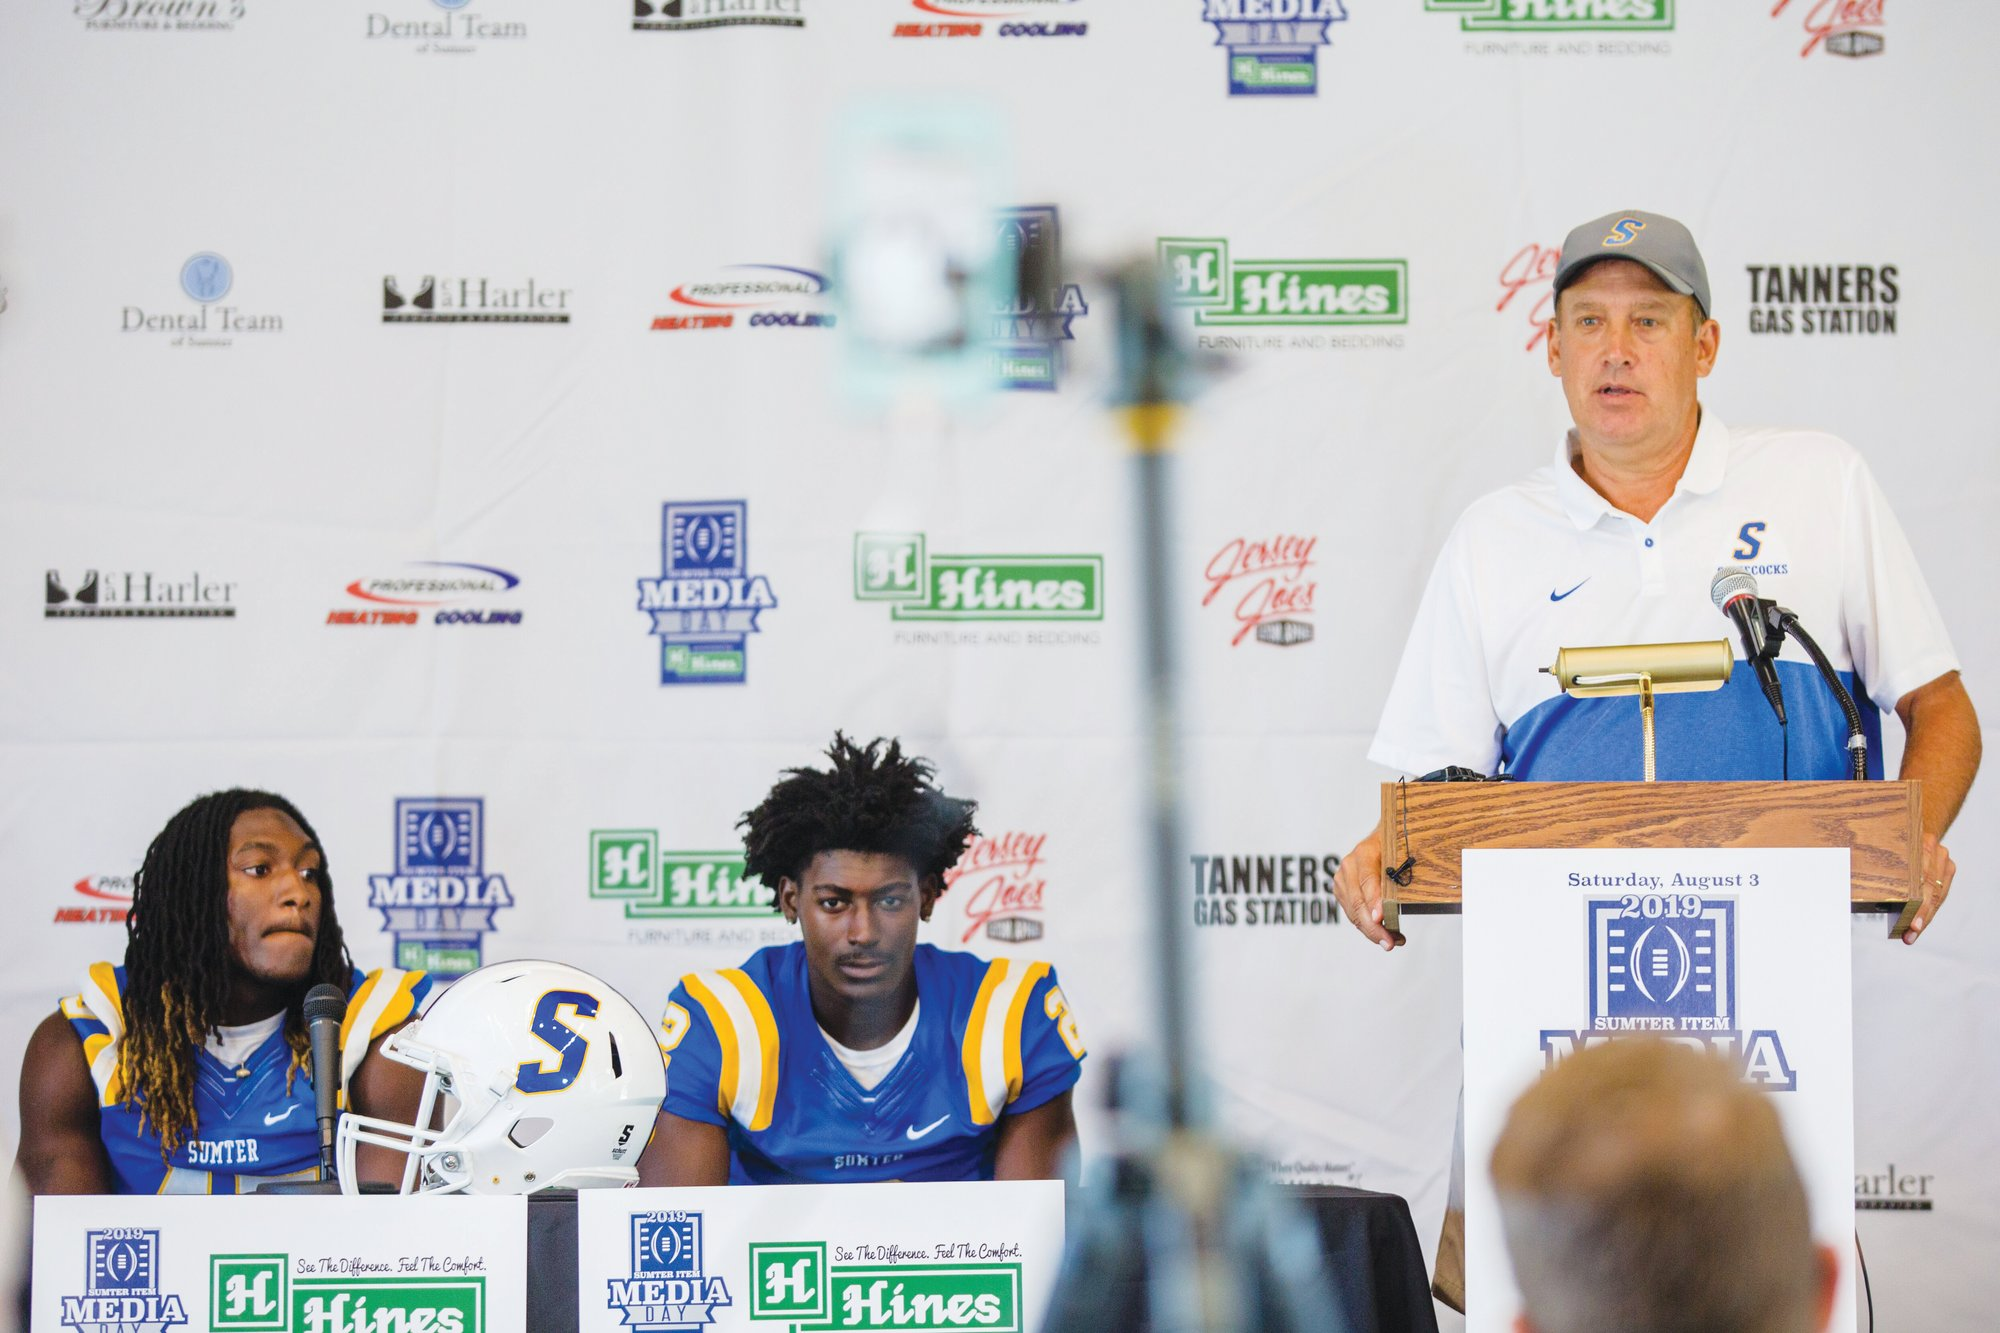 Micah Green / The Sumter Item  Sumter High football head coach Mark Barnes, right, answers a question during The Sumter Item Media Day while players Kirkland Boone, left, and O'Donnell Fortune listen. The Gamecocks will be facing 3-time defending 5A state champion Dutch Fork in the a scrimmage in the 38th Annual Sumter Sertoma Football Jamboree on Friday at Memorial Stadium.